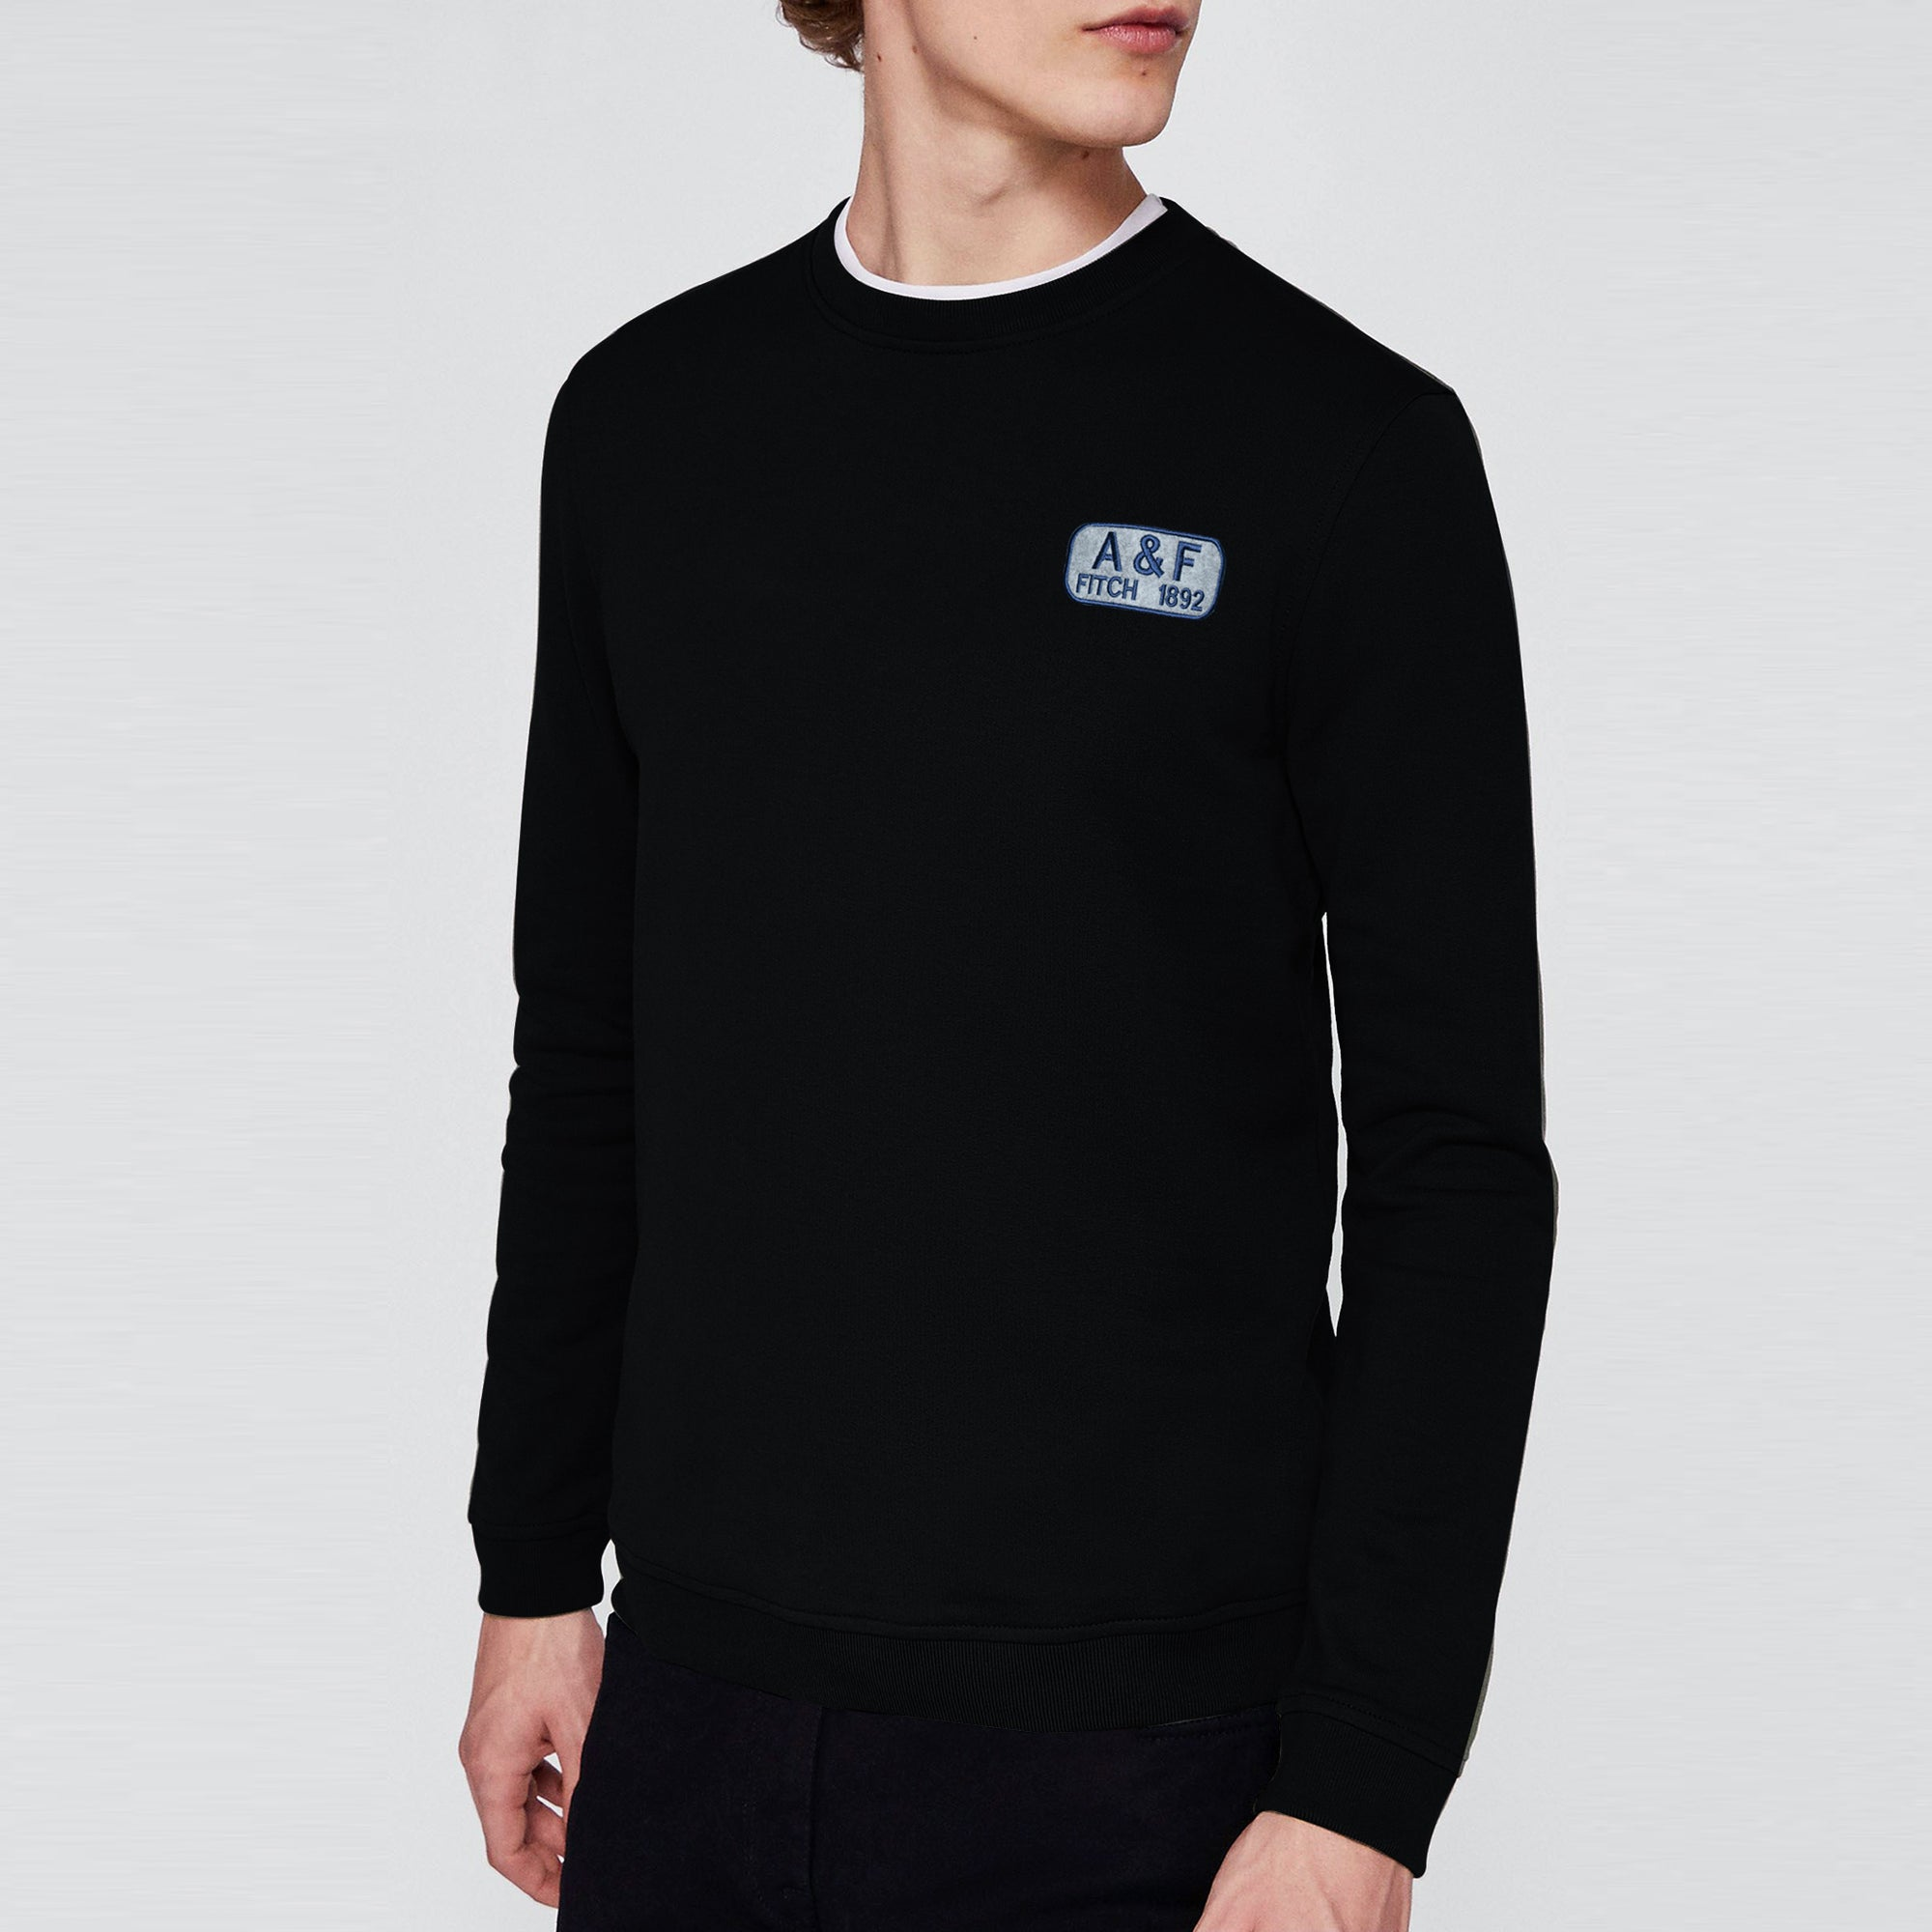 A&F Fleece Crew Neck Sweatshirt For Men-Black-BE6686